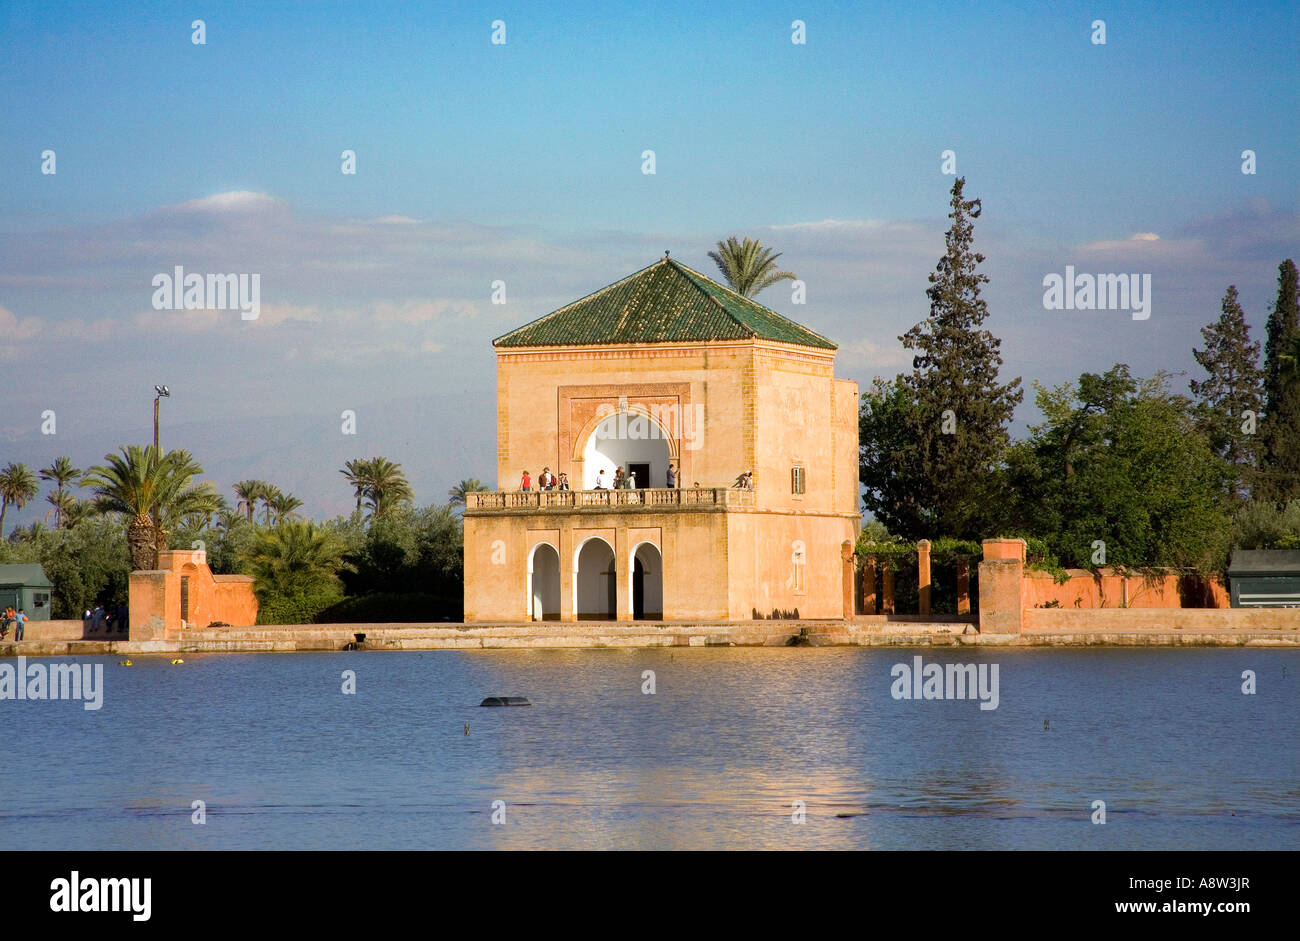 The jardin de la menara in marrakech stock photo royalty for Jardin marrakech